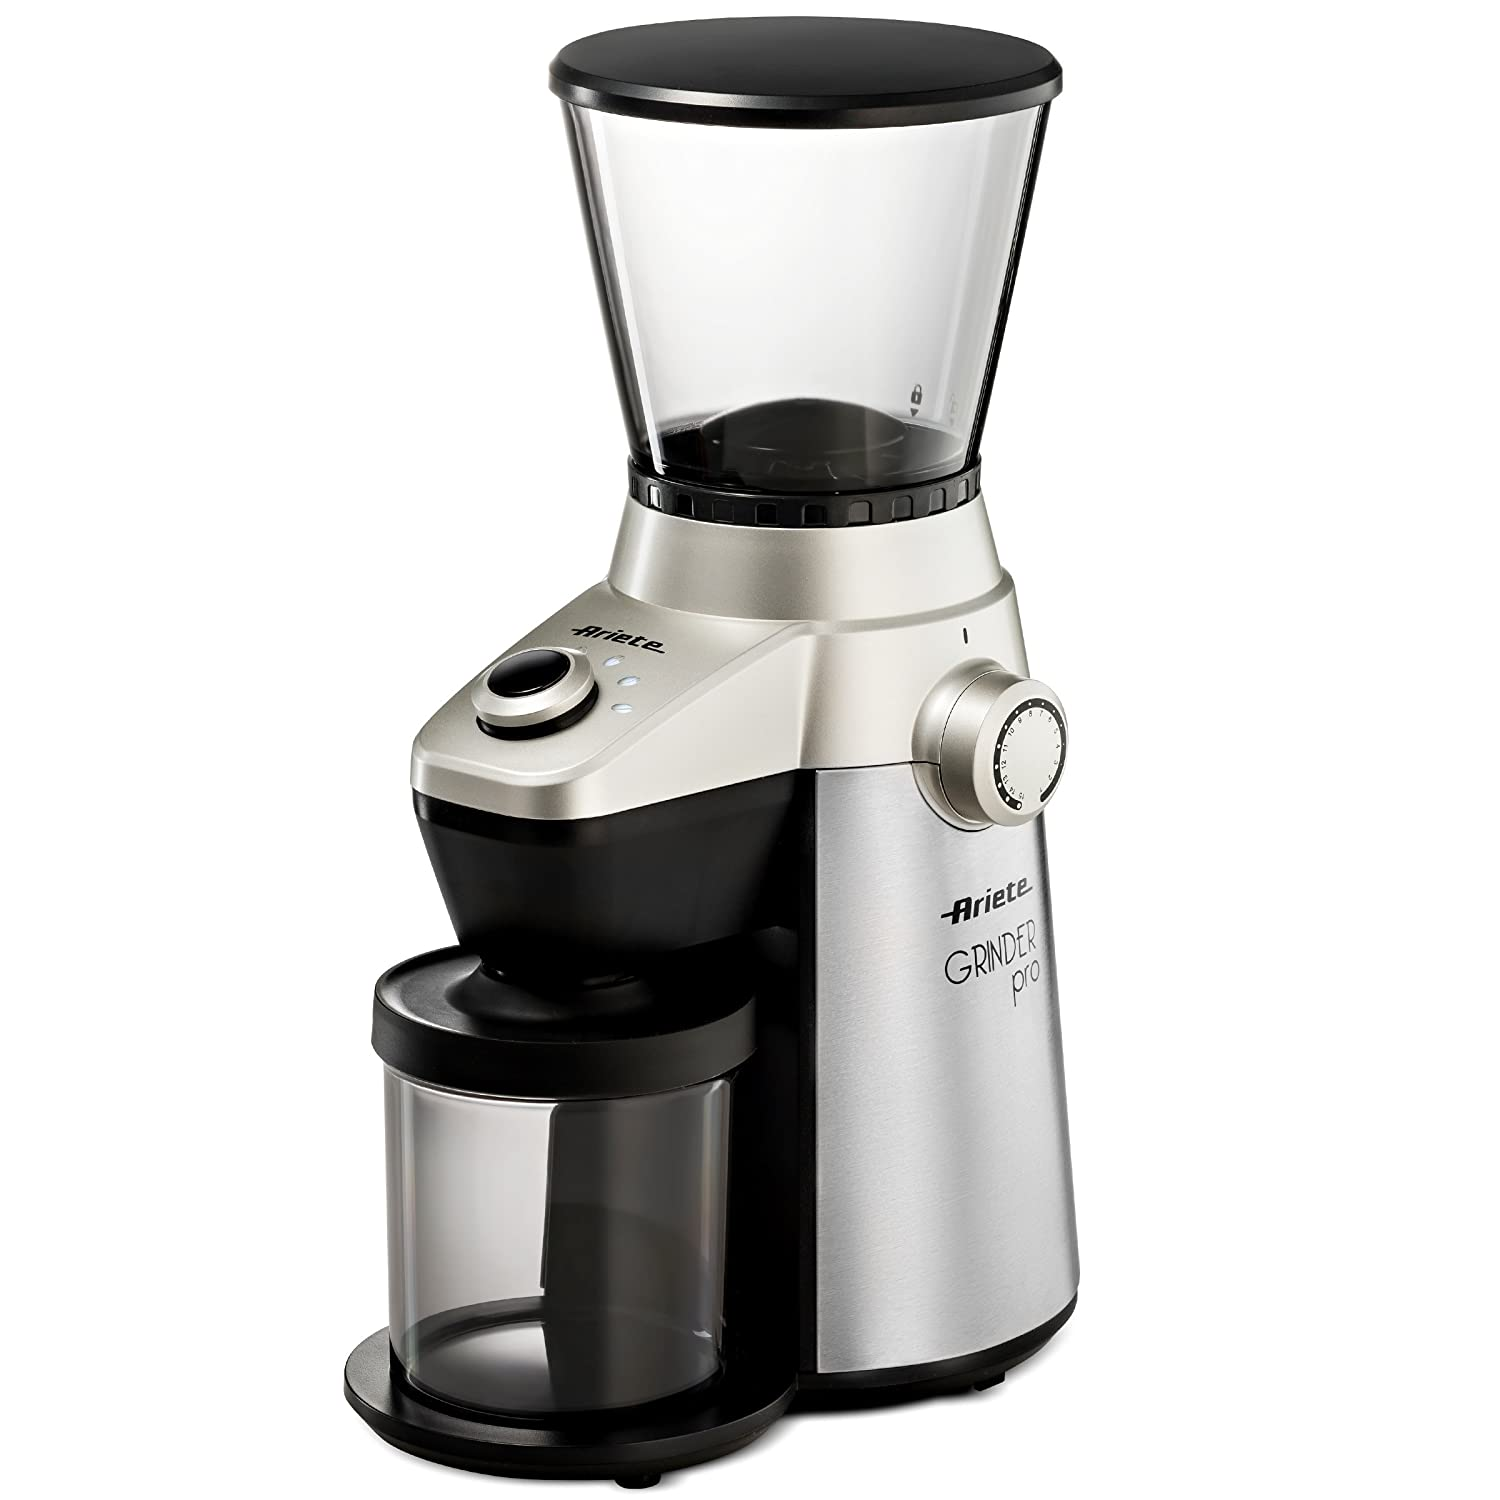 Ariete -Delonghi Electric Coffee Grinder - Professional Heavy Duty Stainless Steel, Conical Burr - Ultra Fine Grind, Adjustable Cup Size, 15 Fine - Coarse Grind Size Settings DeLonghi Ariete 3017